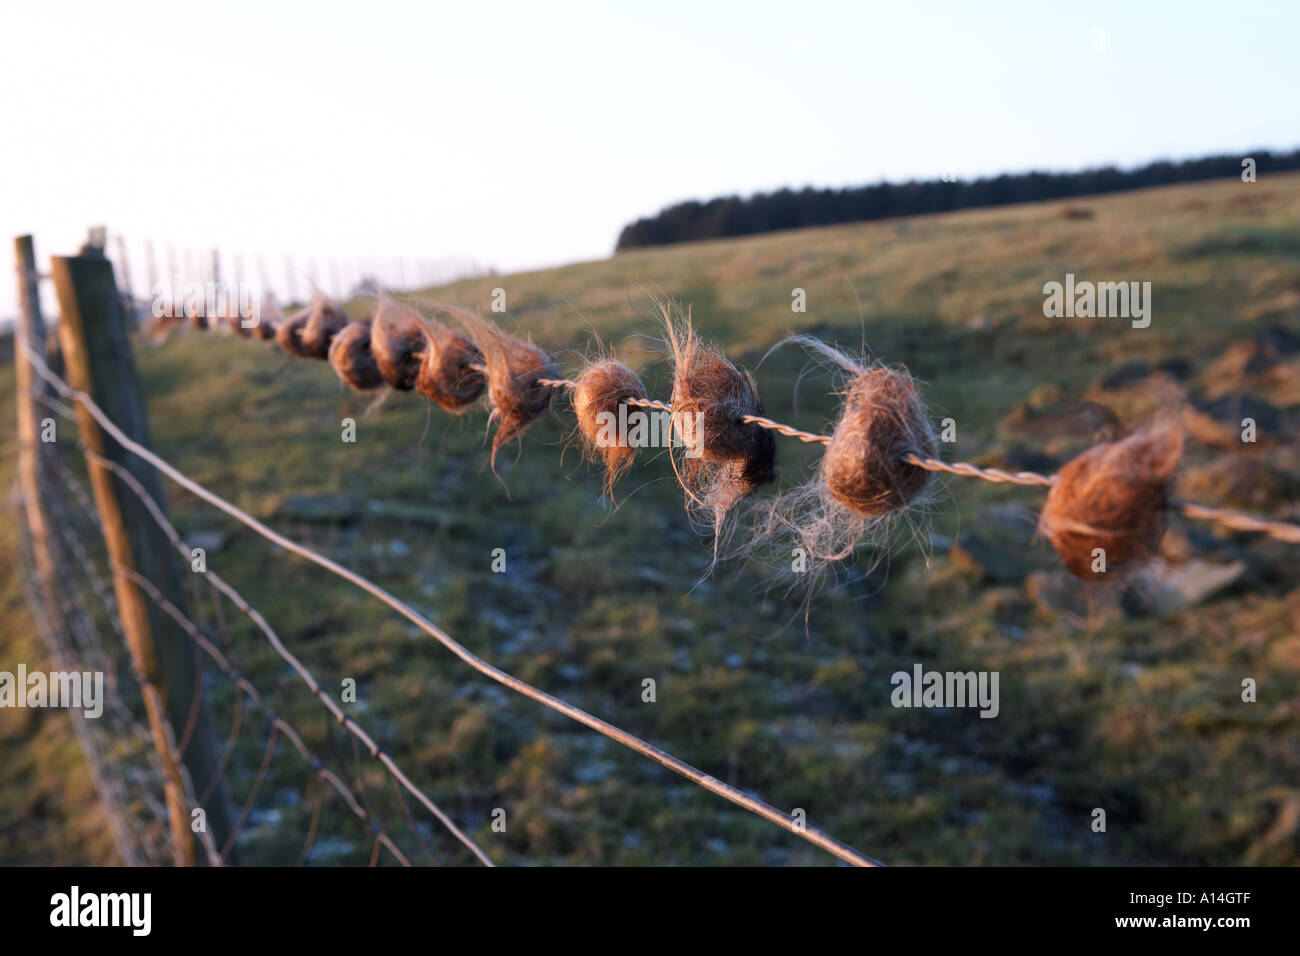 balls of deer hair caught on barbed wire fence where they jump over ...